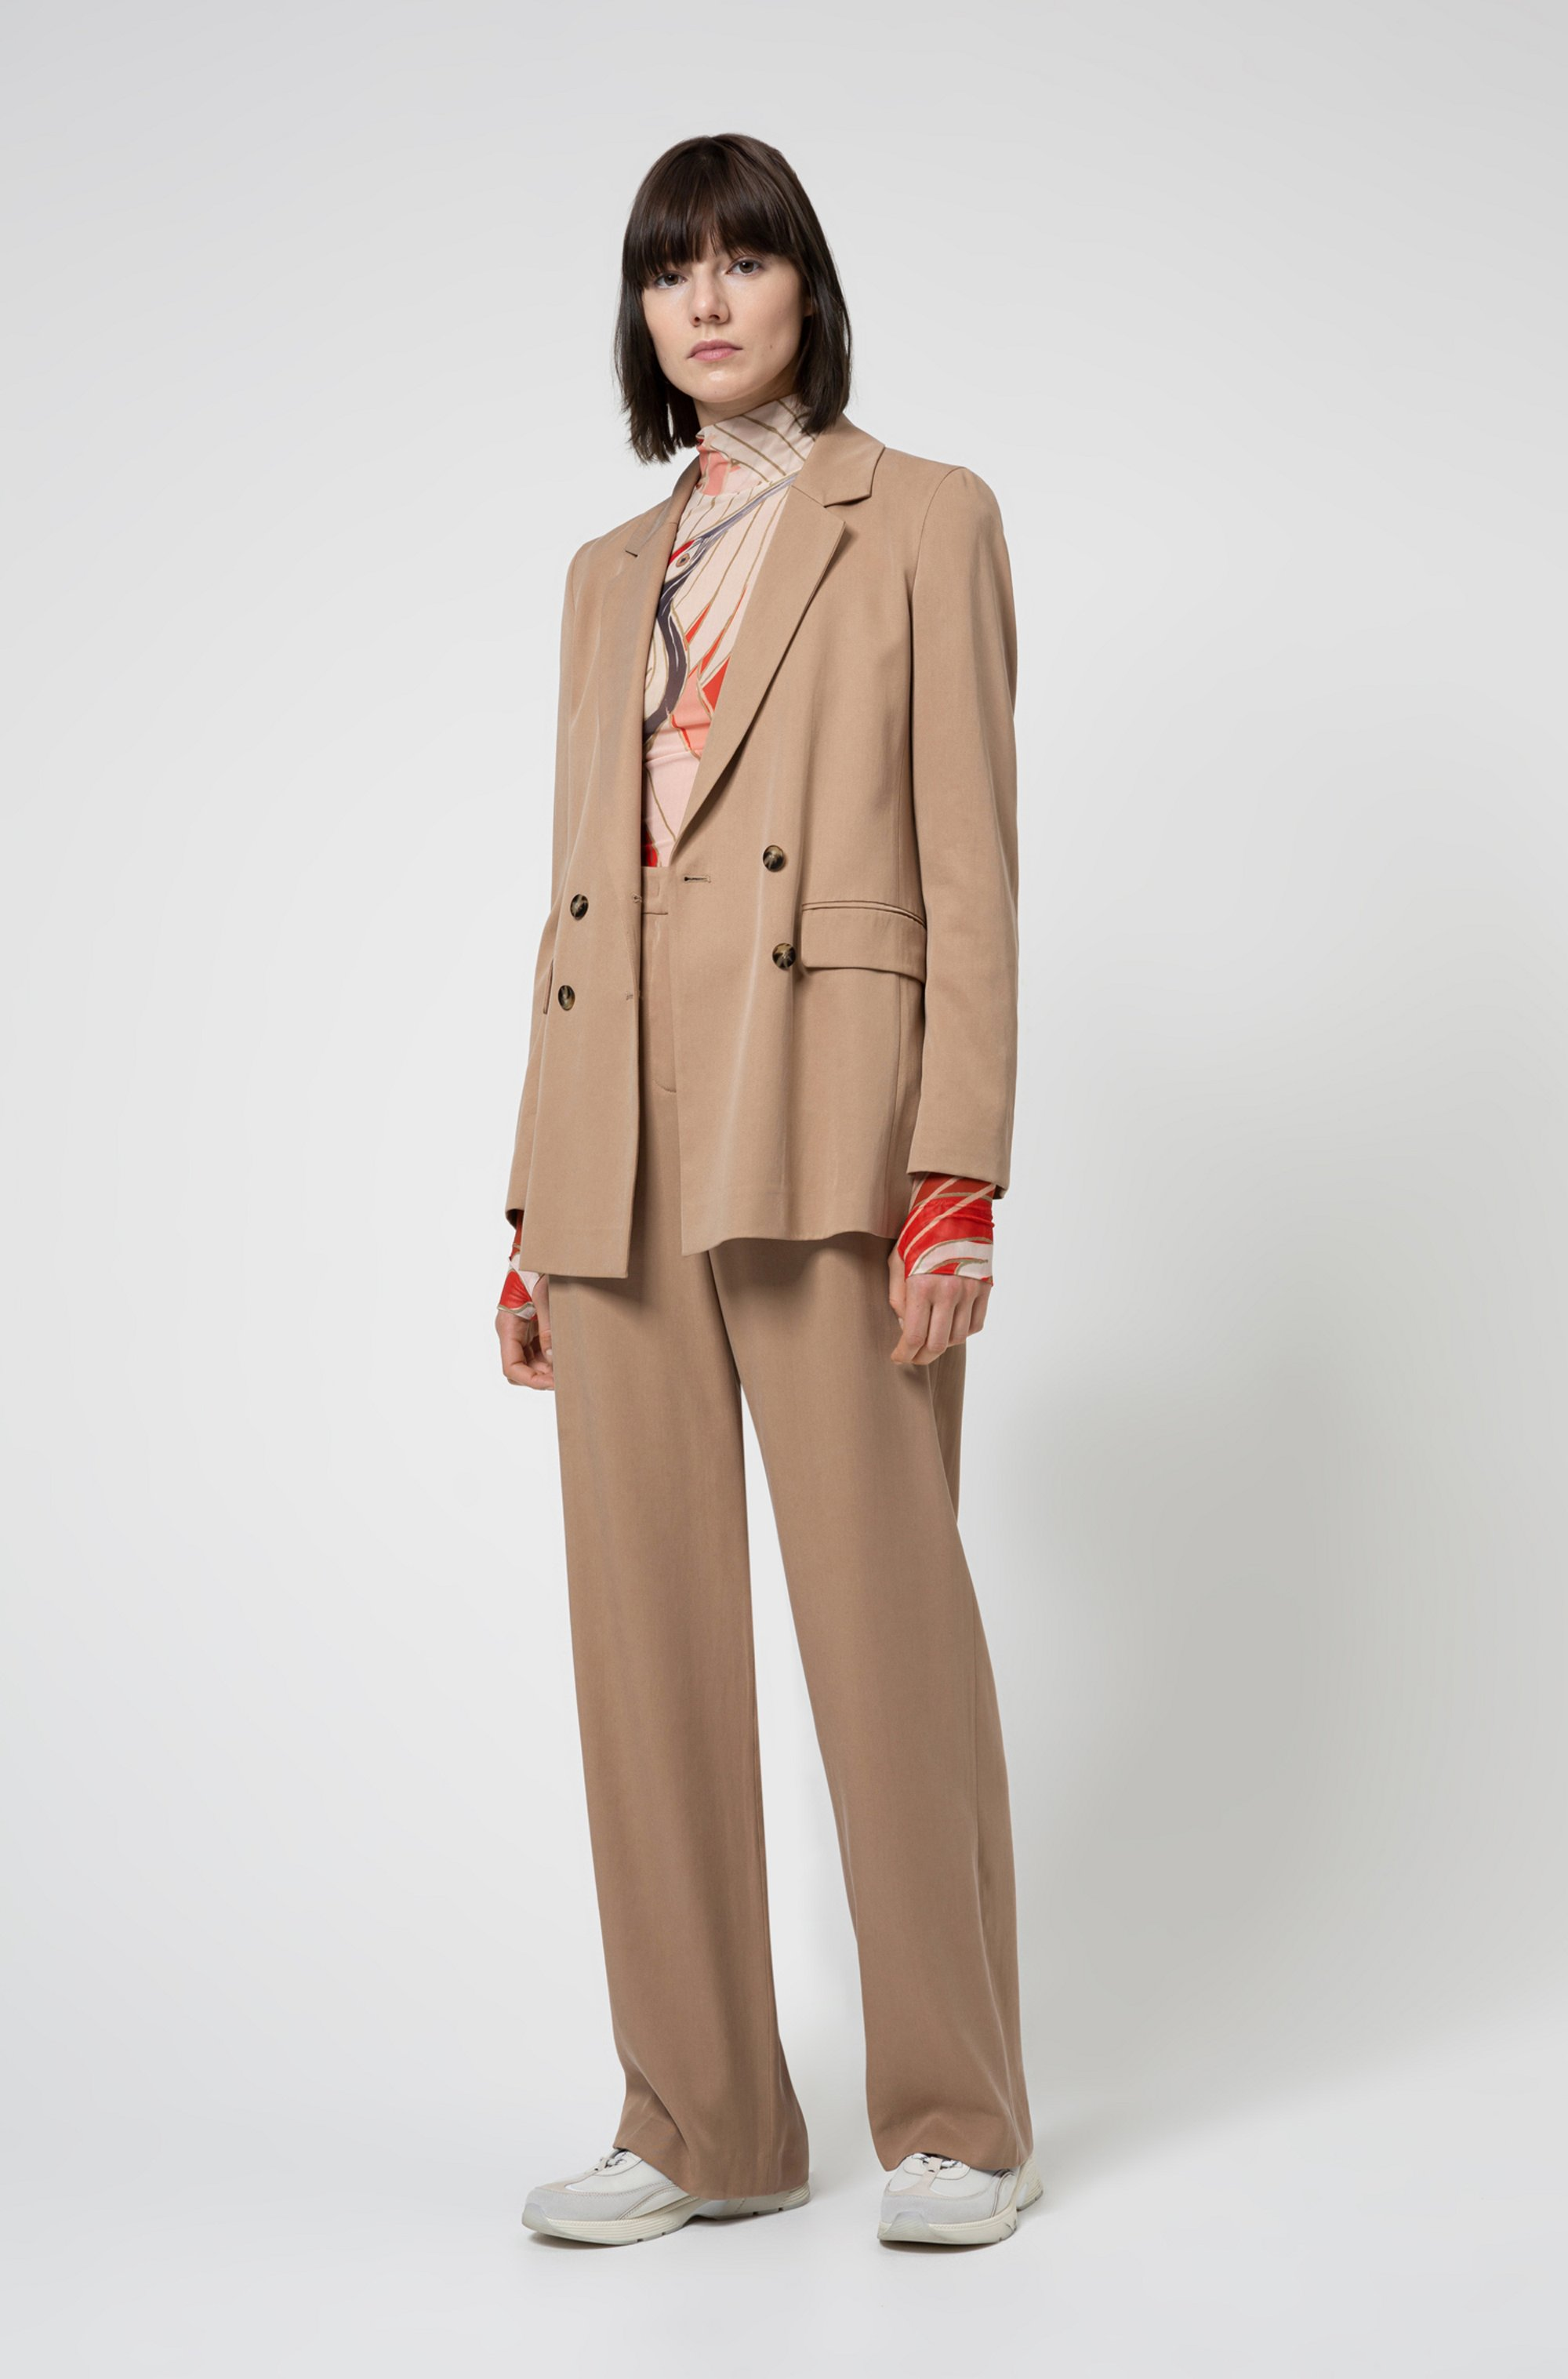 Relaxed-fit double-breasted jacket in TENCEL™ Lyocell